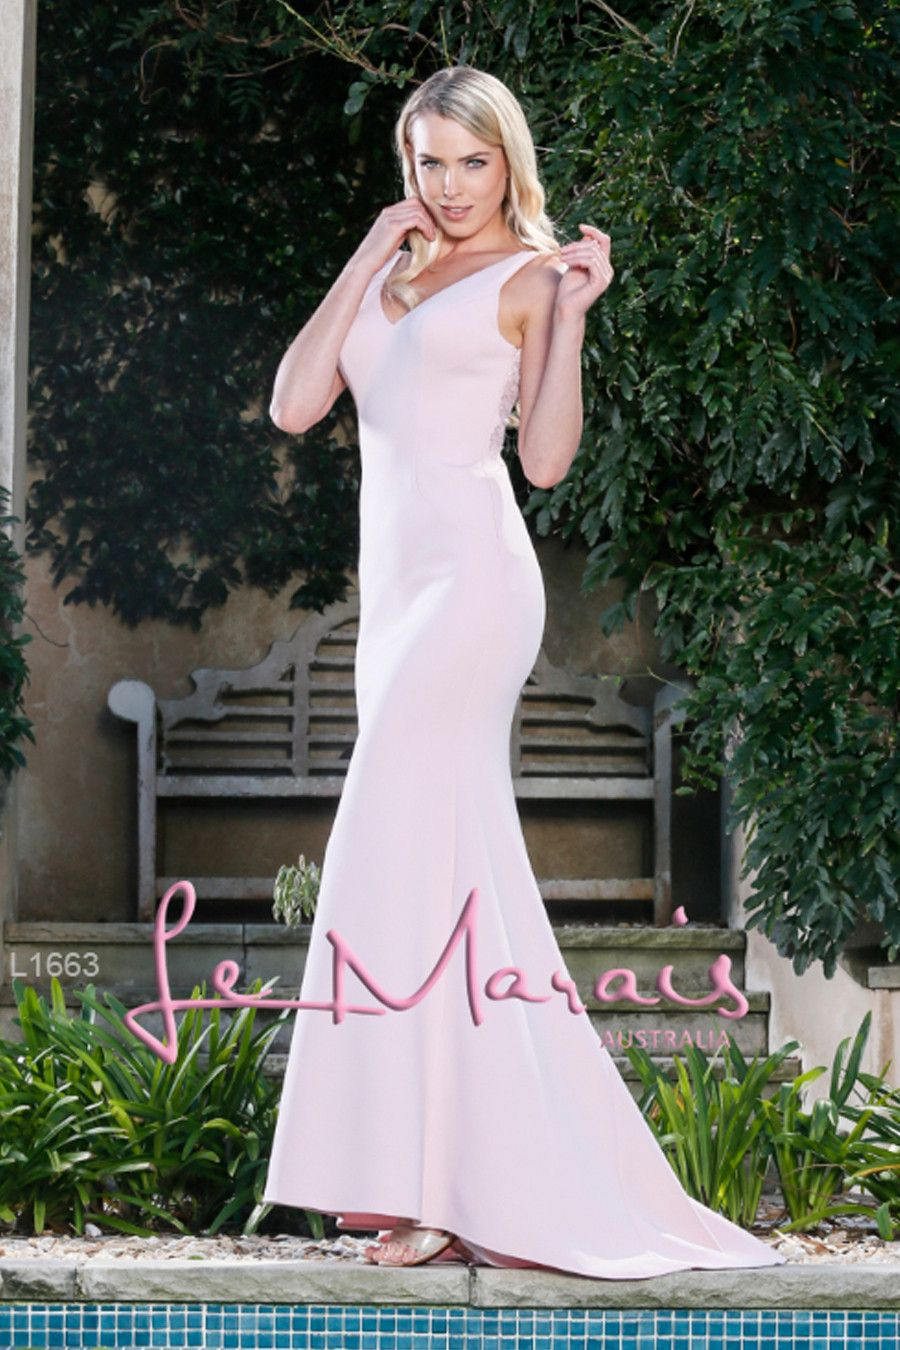 Tinaholy couture le marais l pink rose tea mermaid formal gown